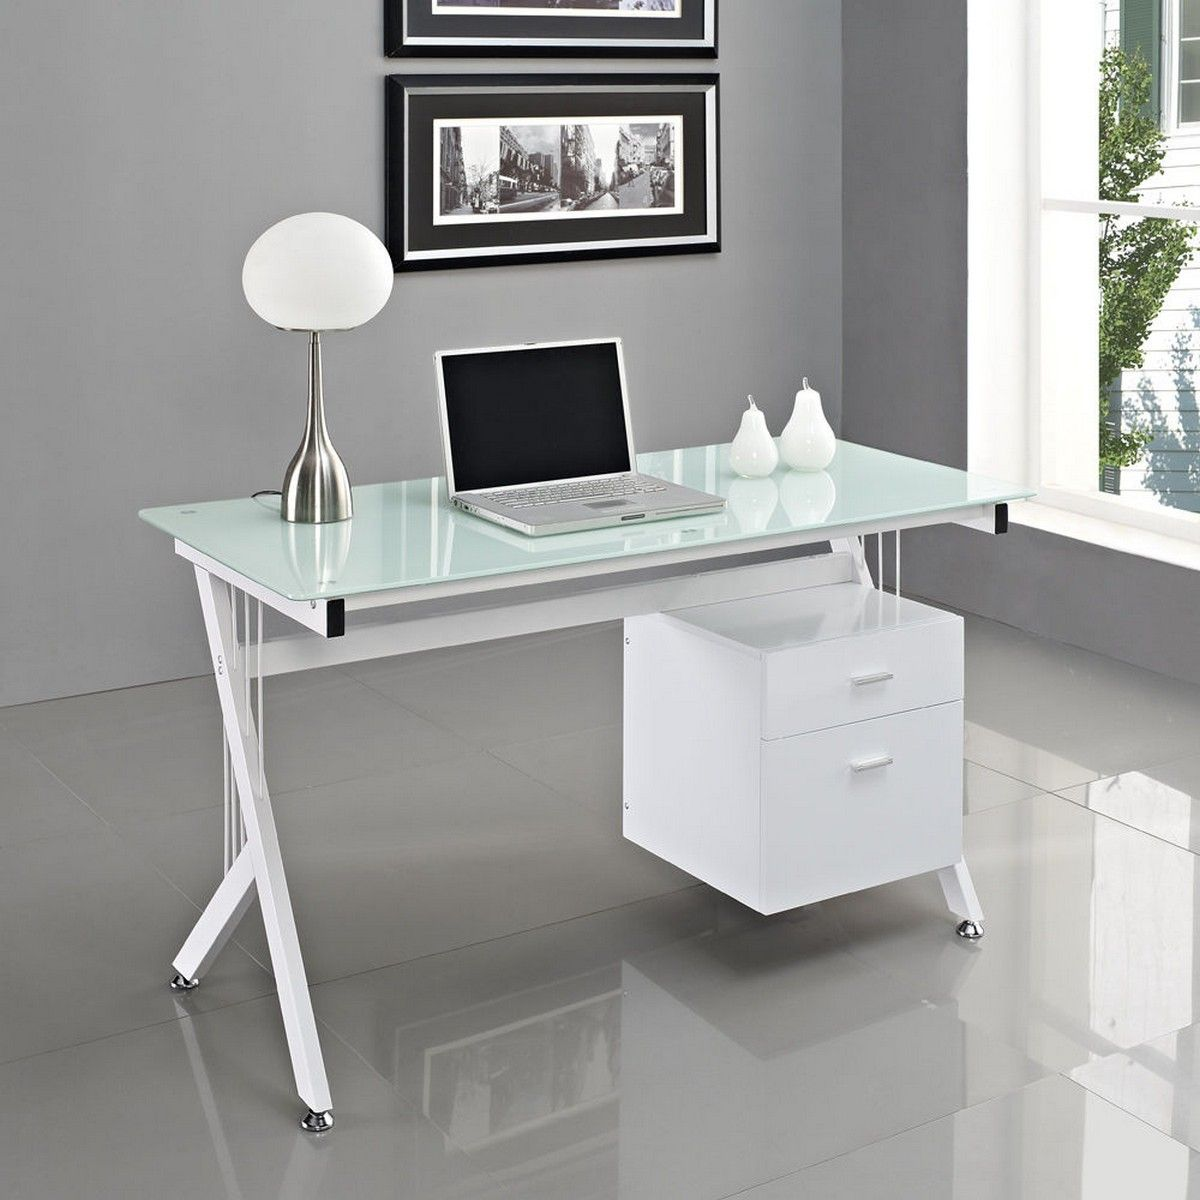 O Diy Computer Desk Ideas To Build For Your Office Do You Desire A Brand New More Economica Computer Desks For Home White Computer Desk Best Home Office Desk